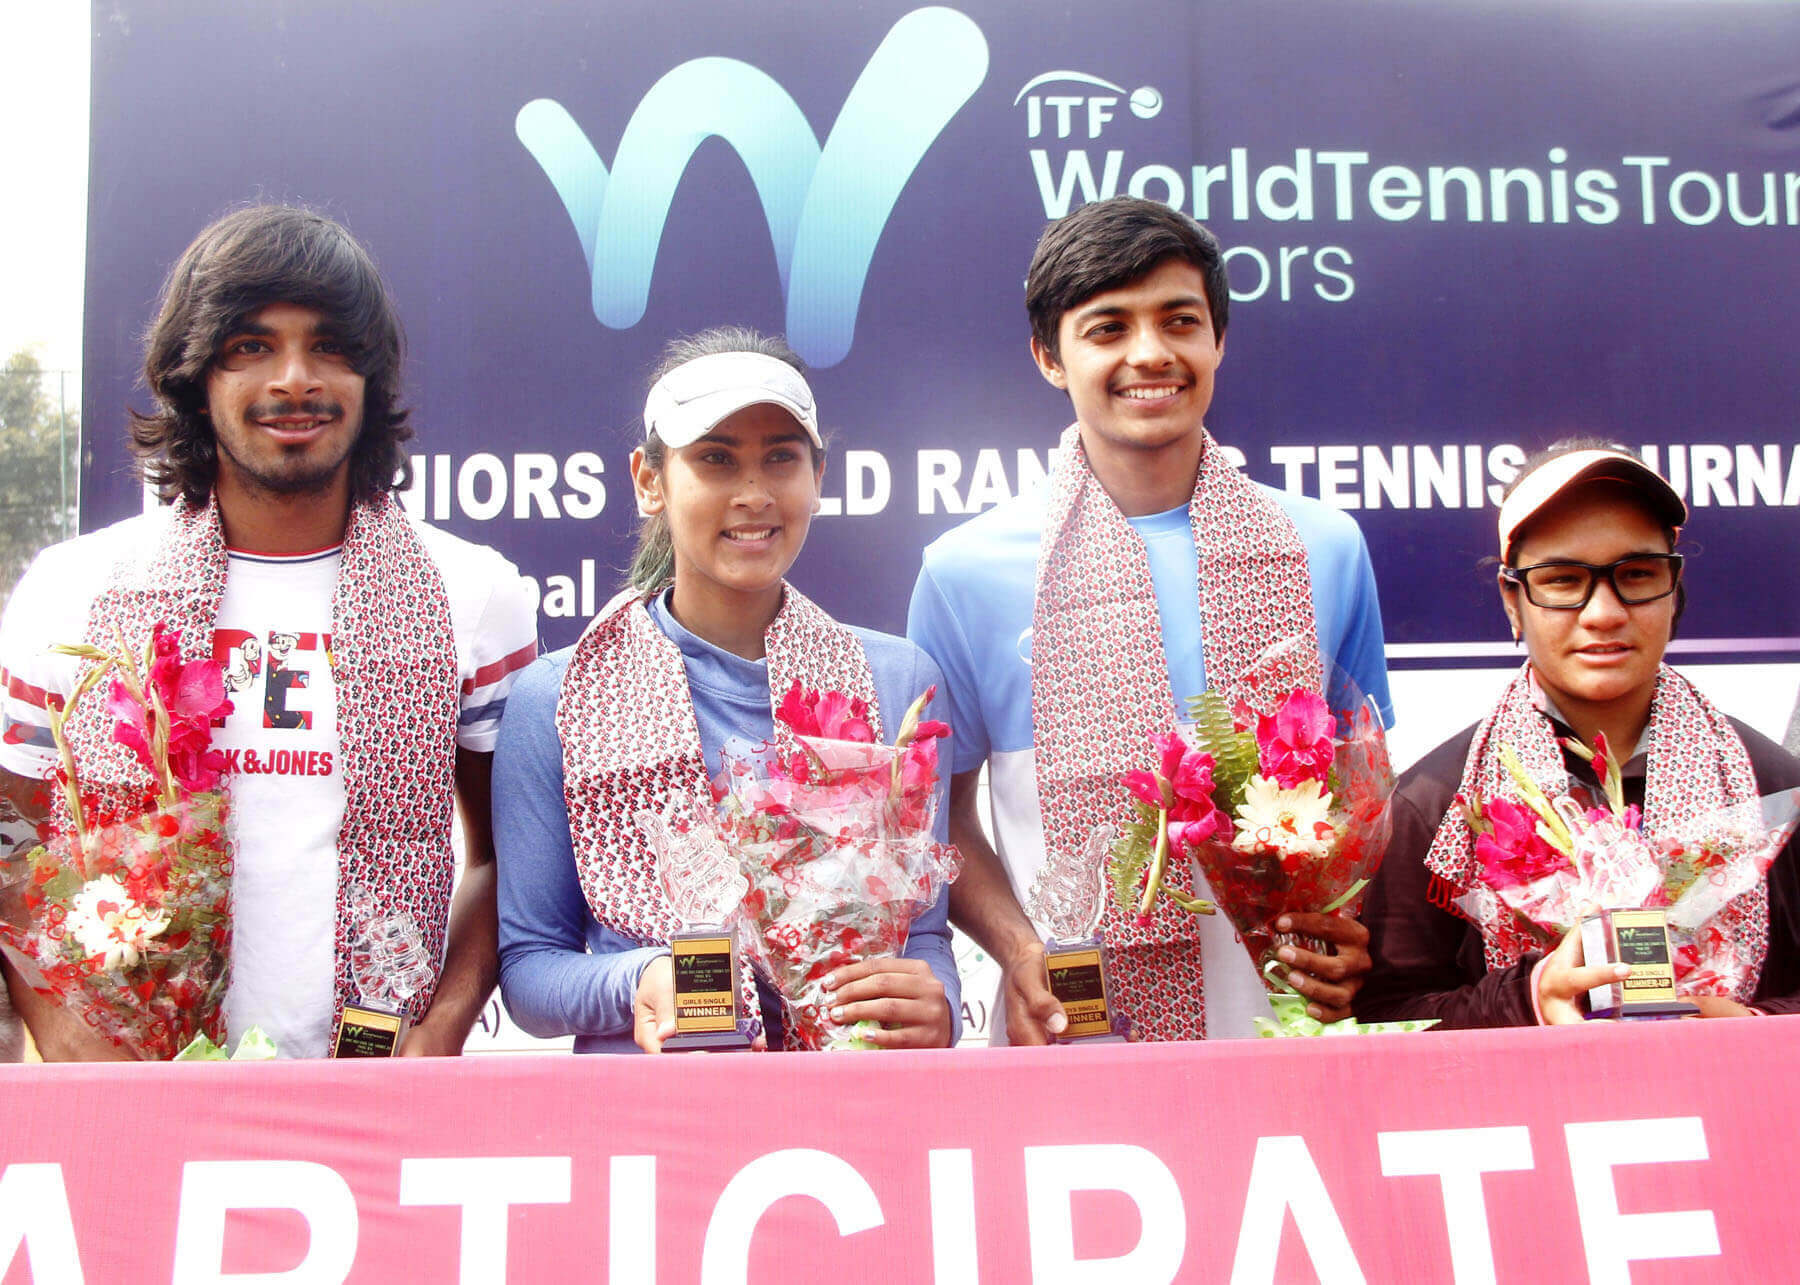 Winners of Internal Tennis Federation Juniors U-18 Tennis Tournament held in Pokhara pose for a group photo on Saturday. Nepal's Prerana Koirala emerged victorious in women's single category by defeating a fellow Nepali Avilasha Bista.